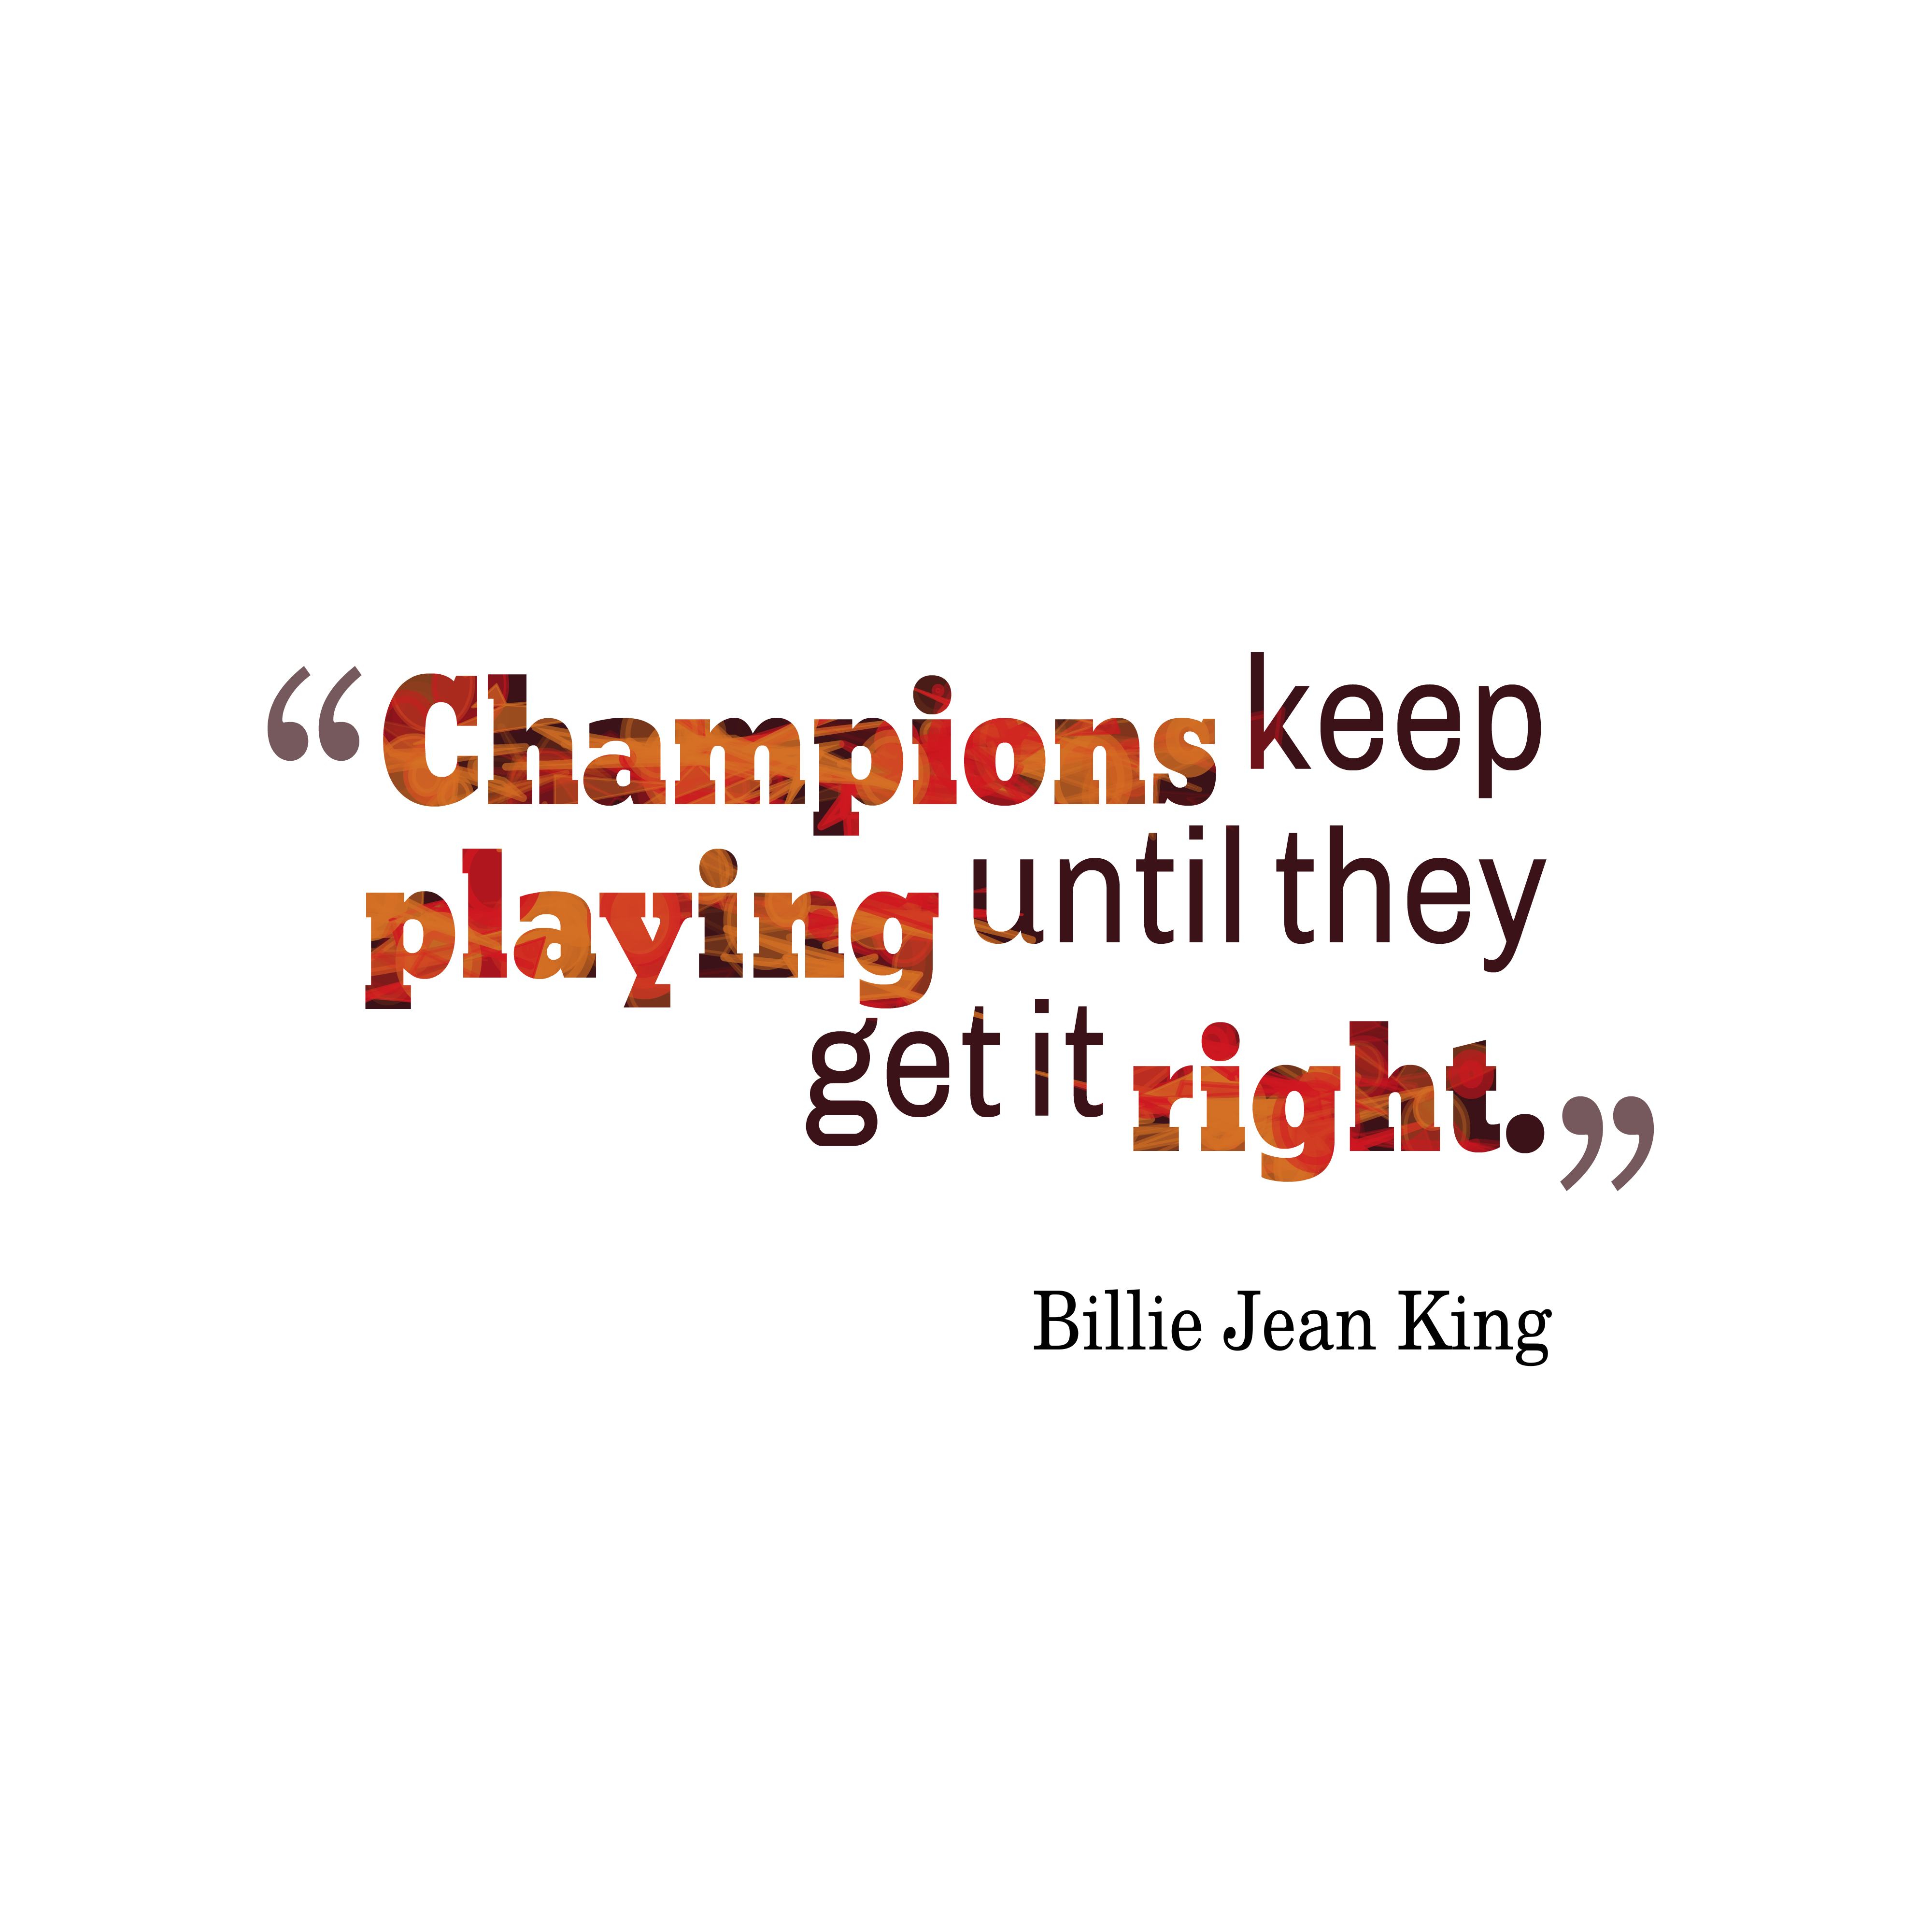 Quotes image of Champions keep playing until they get it right.